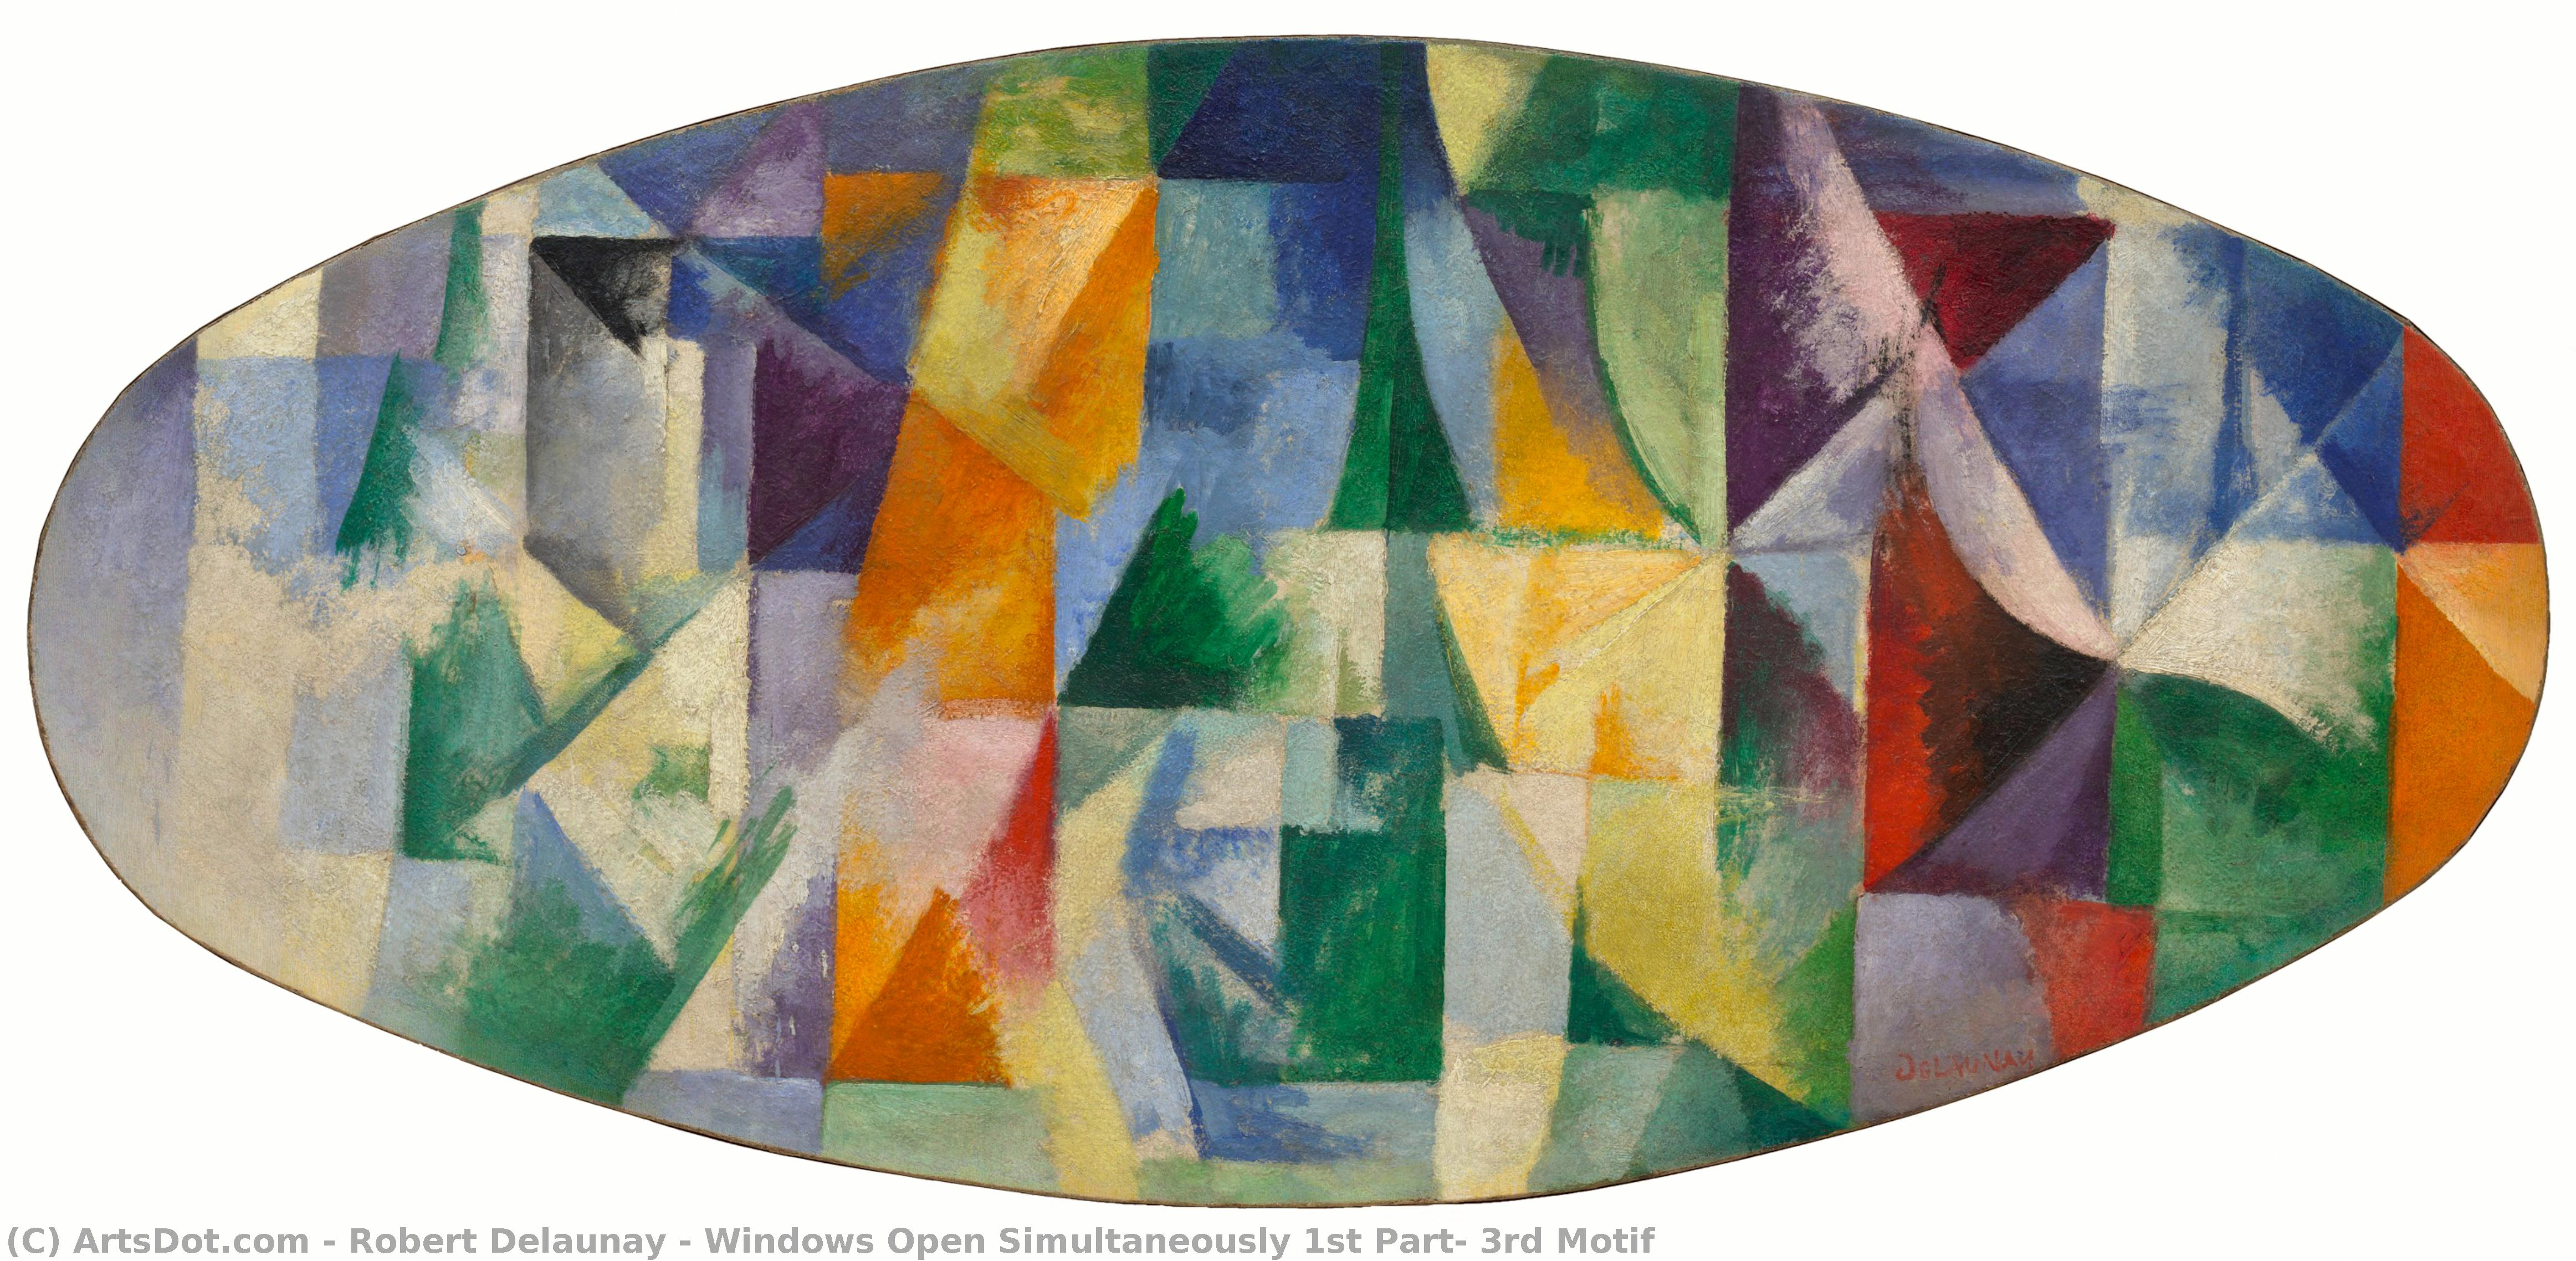 Windows Open Simultaneously 1st Part, 3rd Motif, 1912 by Robert Delaunay (1885-1941, France)